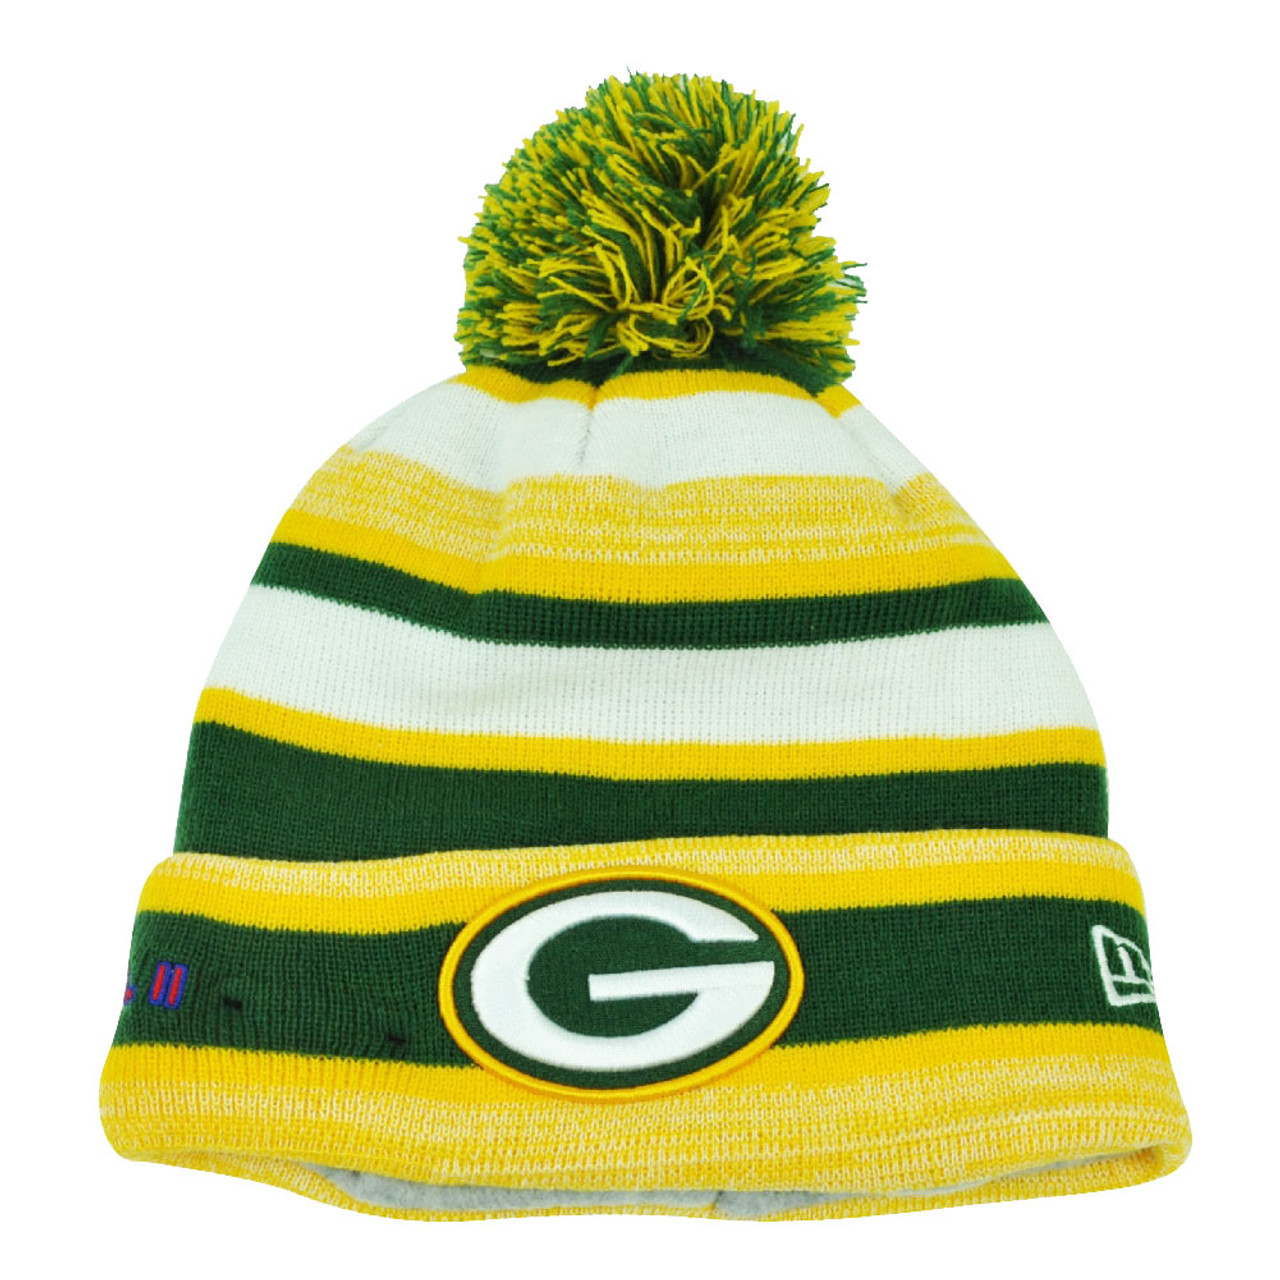 b605b0d4d4cb6e NFL New Era Super Bowl II Sport Knit Green Bay Packers Knit Beanie Striped  Hat - Cap Store Online.com